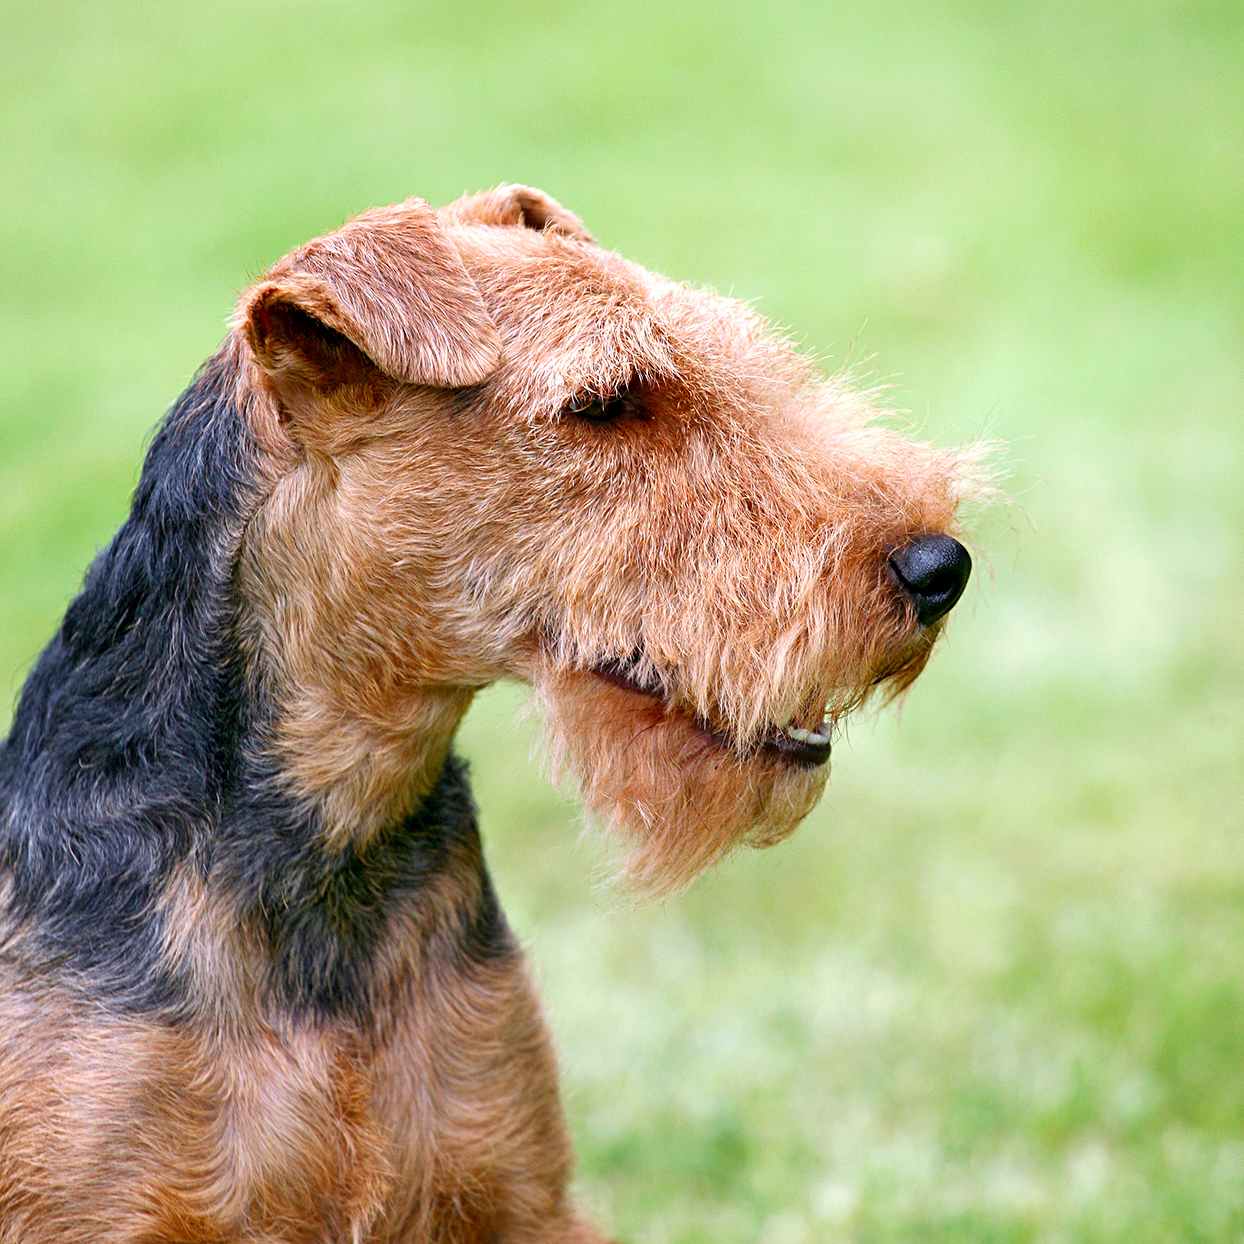 welsh terrier profile with green background